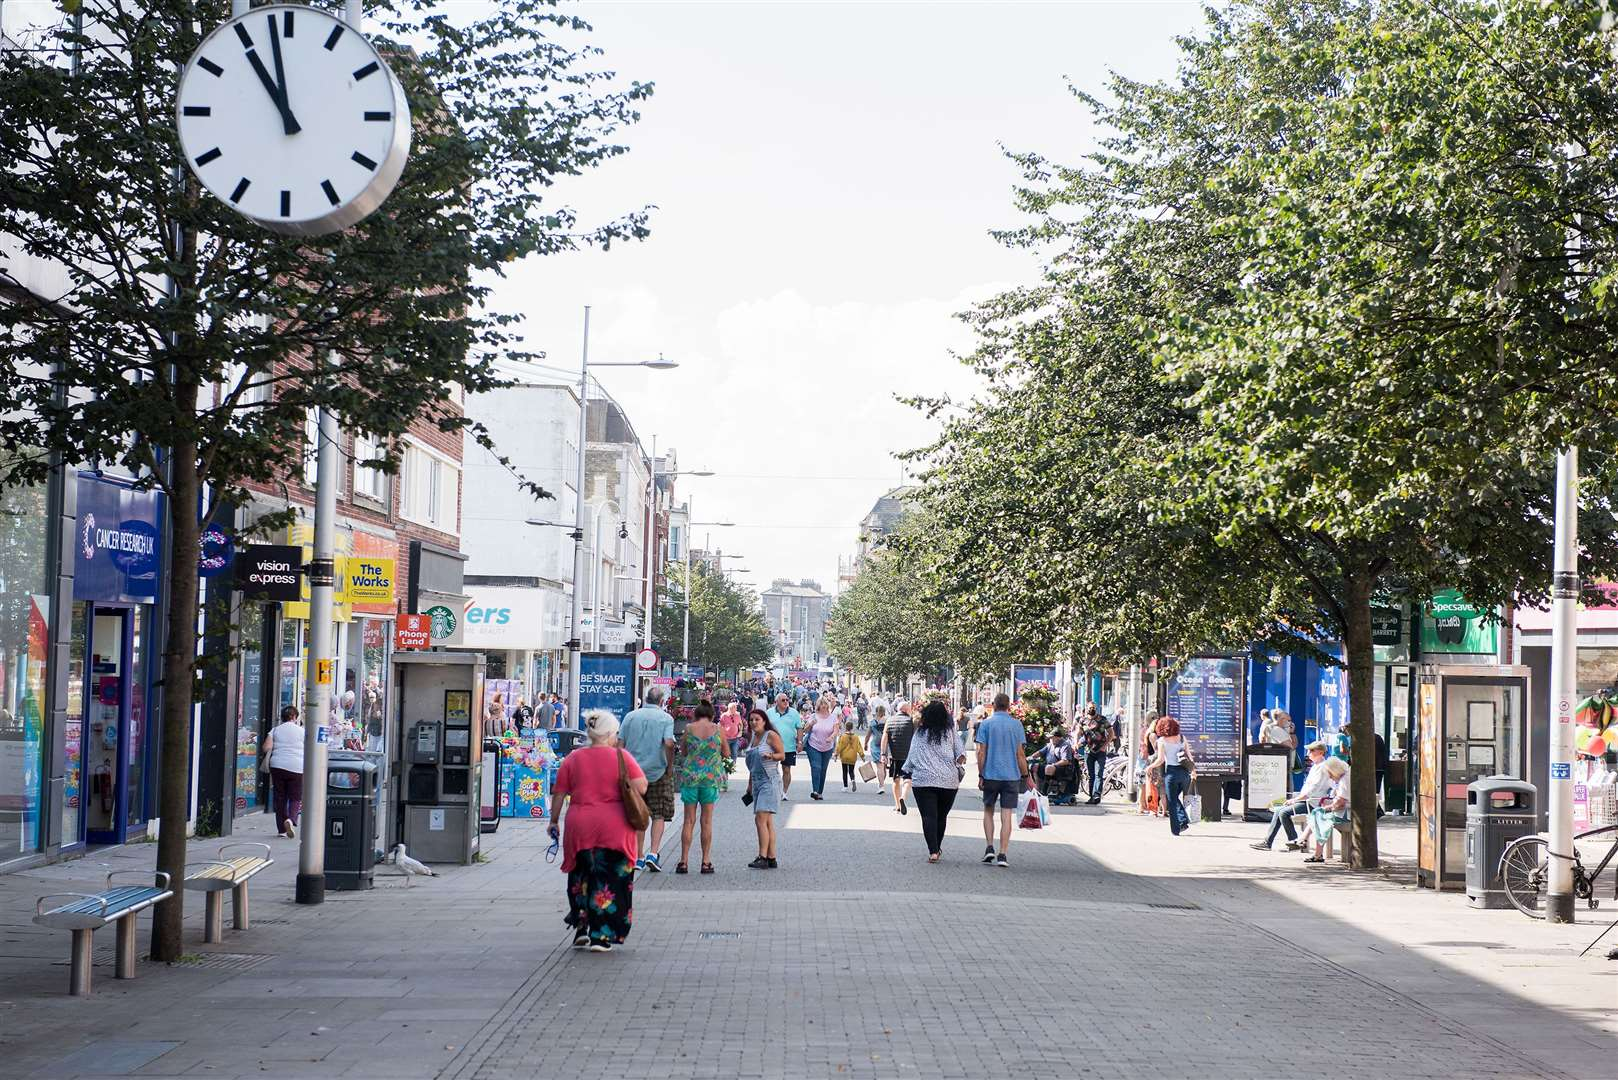 Lowestoft High Street pictured in August 2020. Picture by Mark Westley